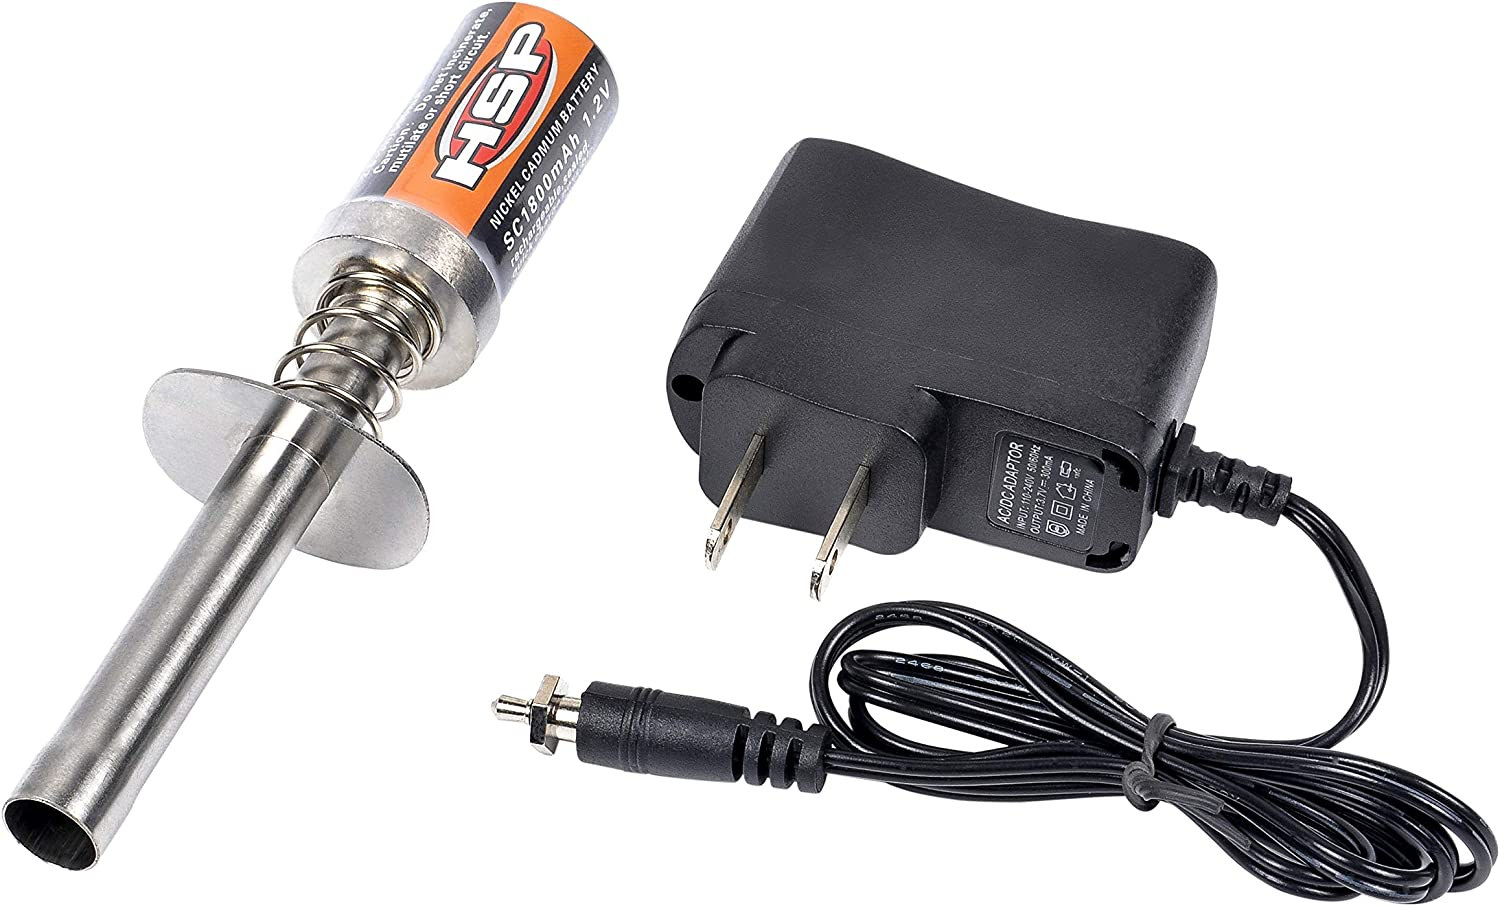 2 Pieces Glow Plug Ignitor Igniter RC Car Engine Starter Tools Support AA Batteries Compatible with Nitro Engine RC Car Buggy Truck Model Plane